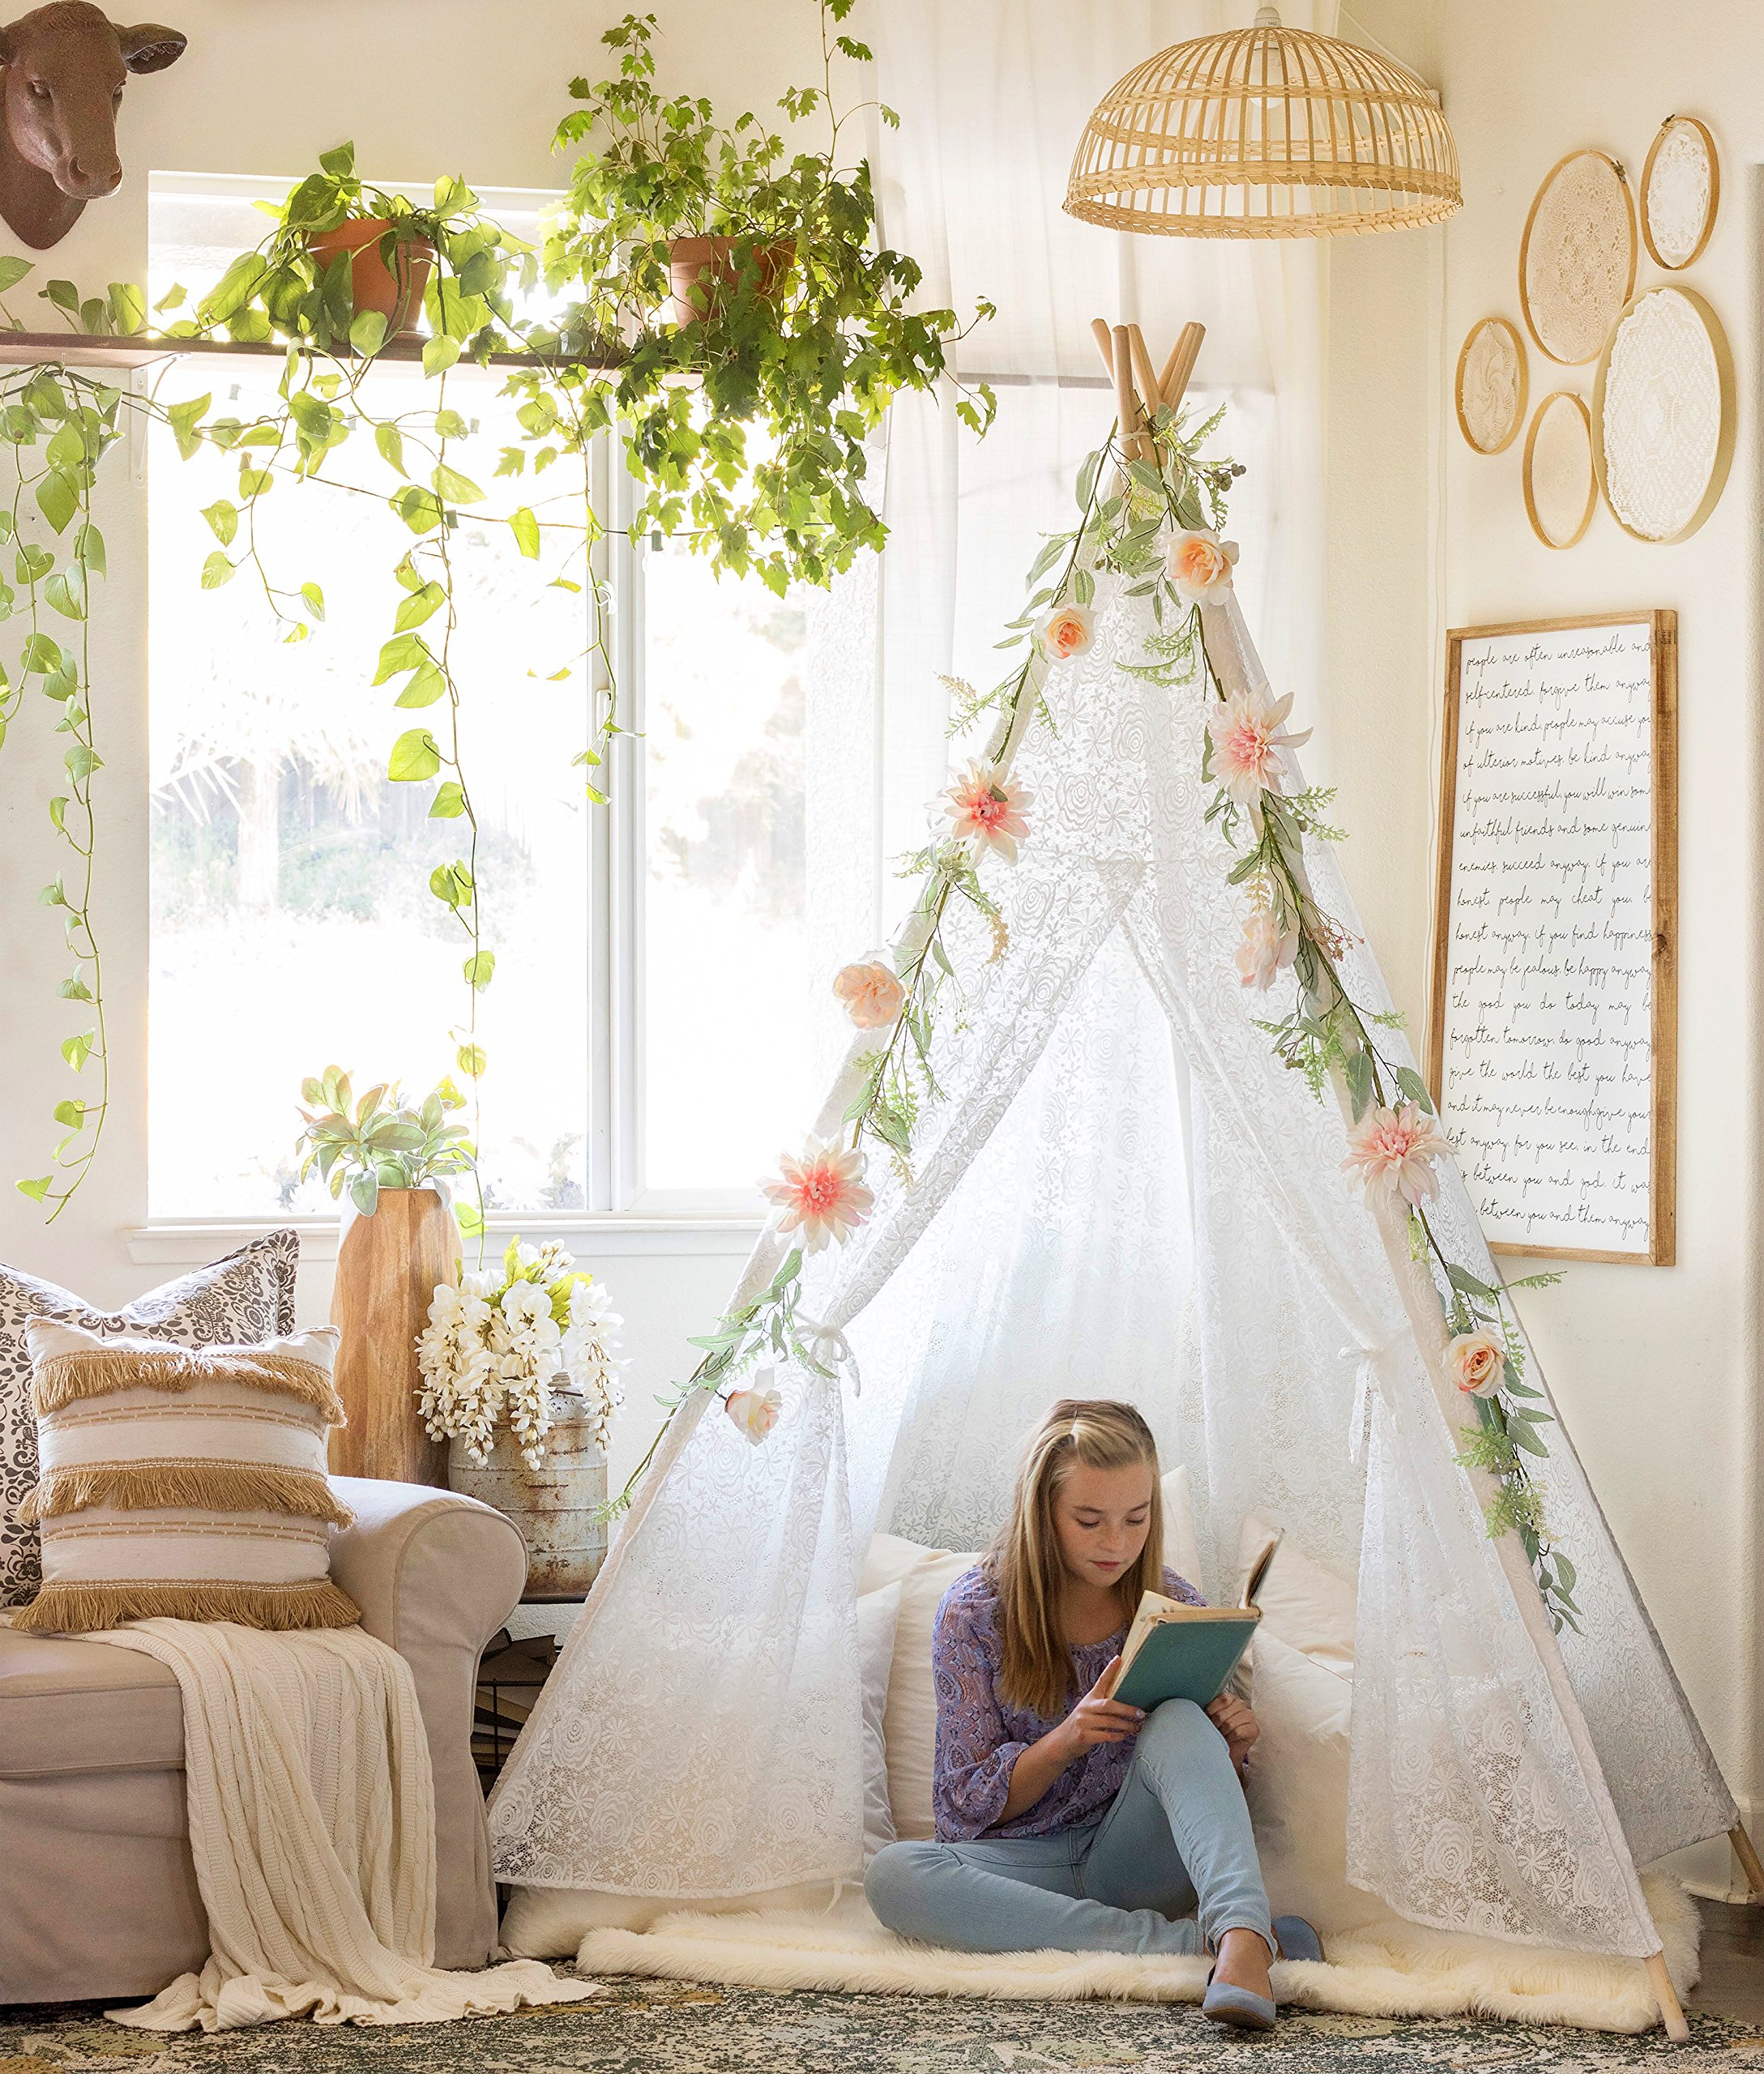 Luxury Lace Teepee for Kids & Adults (XX-Large 7' Tall) 5-Sided Sleeping Tent for Indoor & Outdoor Use | Wedding, Birthday, Sleepover, Photography Décor | Girls & Boys